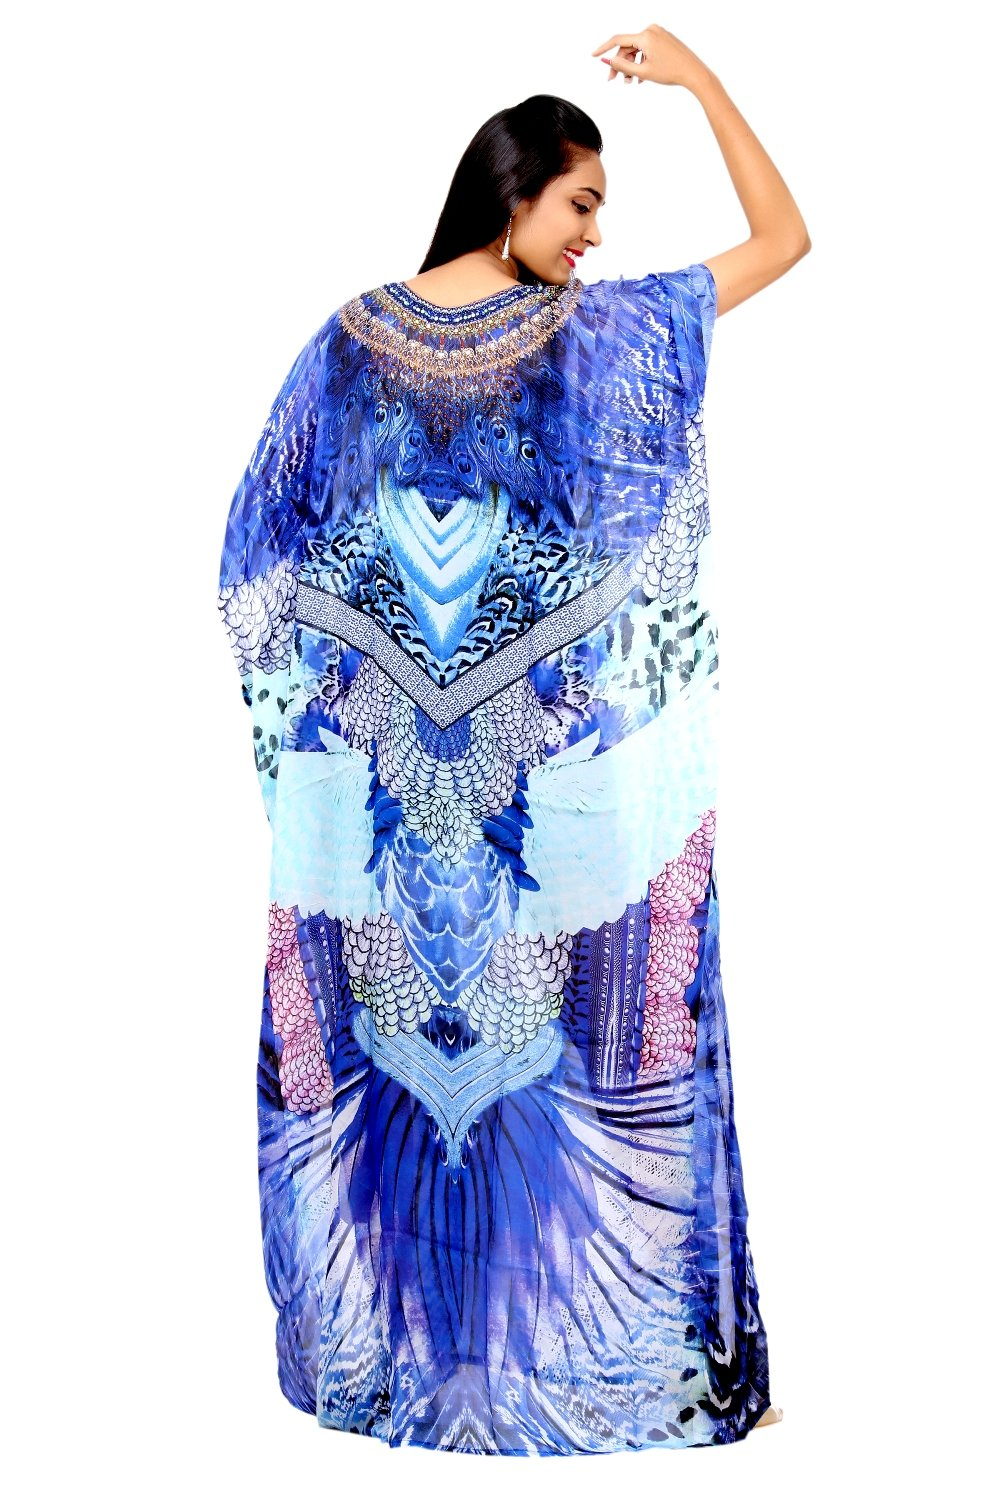 Experience the Splendor of rich Feathery Print Silk Kaftan with embroidered V Neck